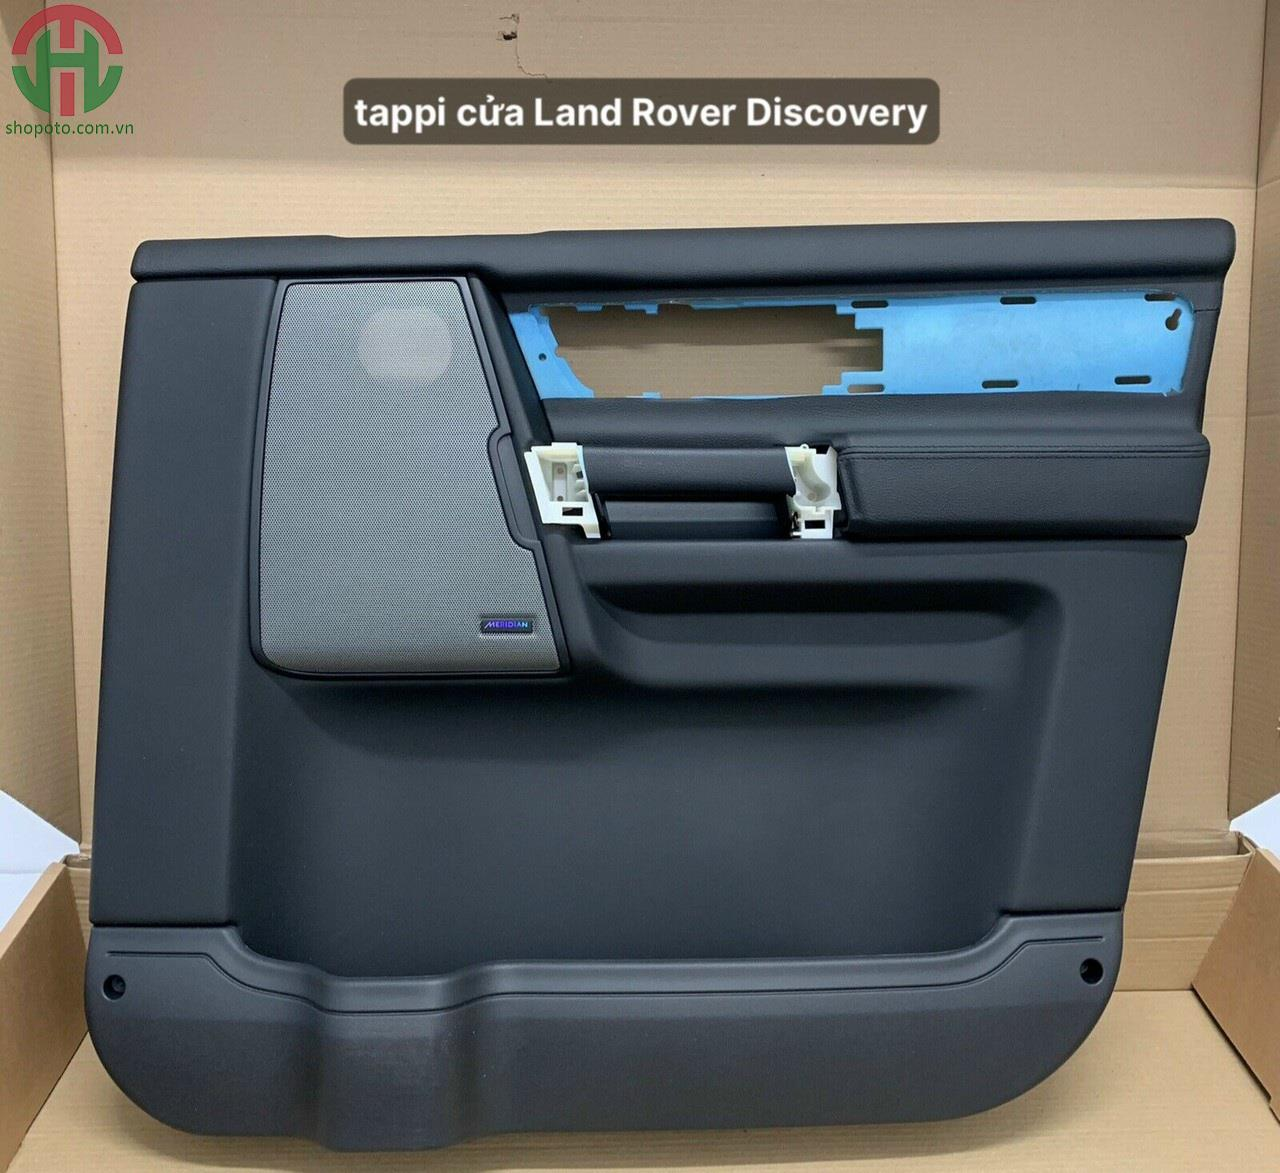 Tappi cửa xe Land Rover Discovery